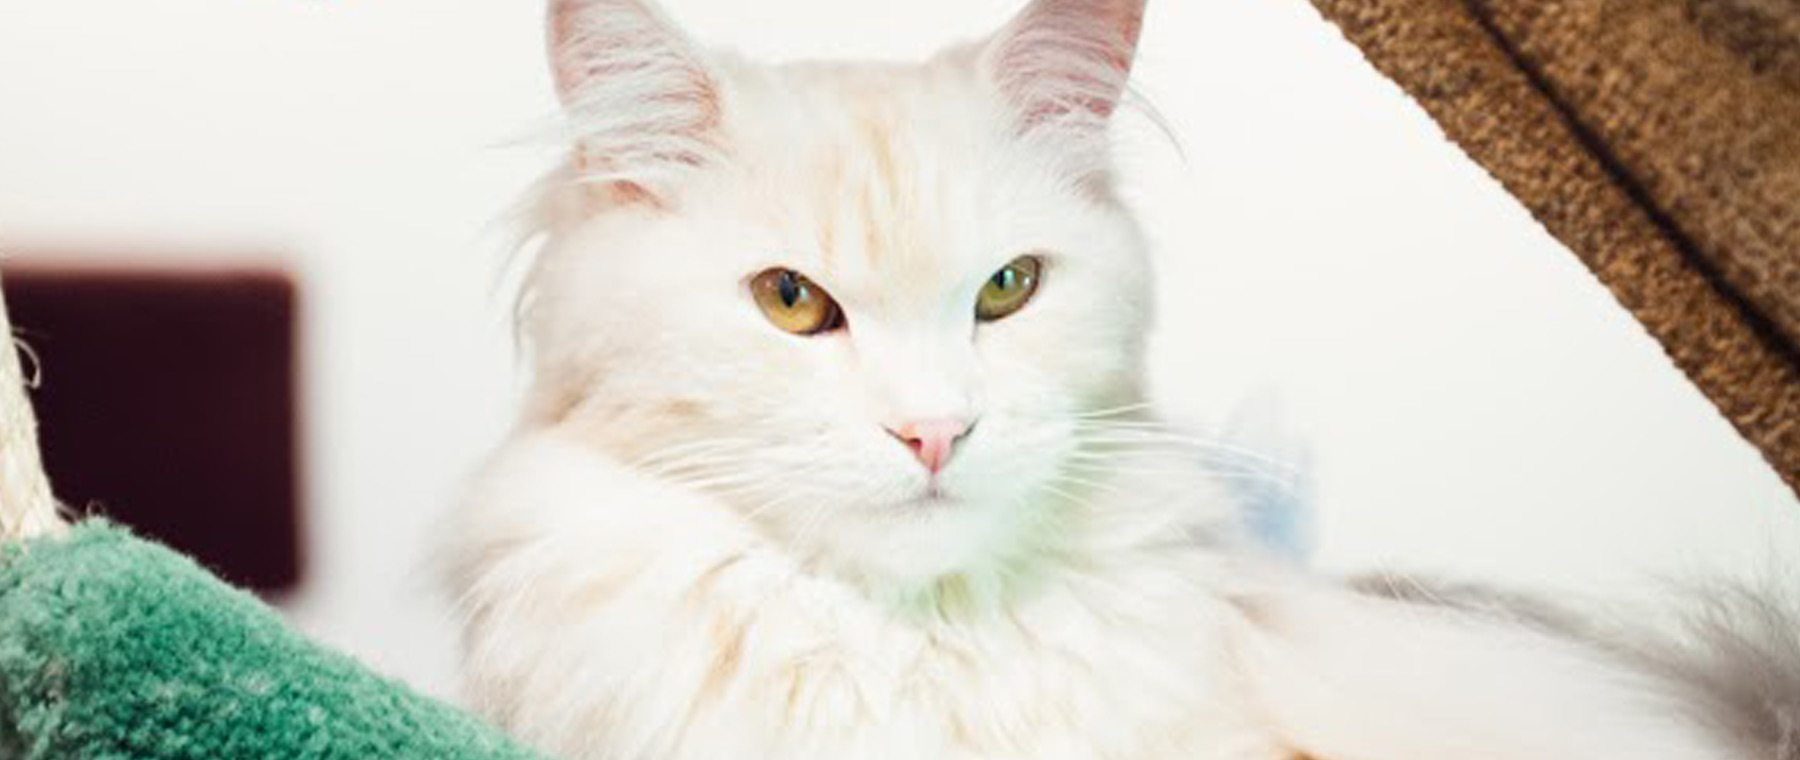 Coffee Cat — Hypoallergenic kitties purrfect with latte